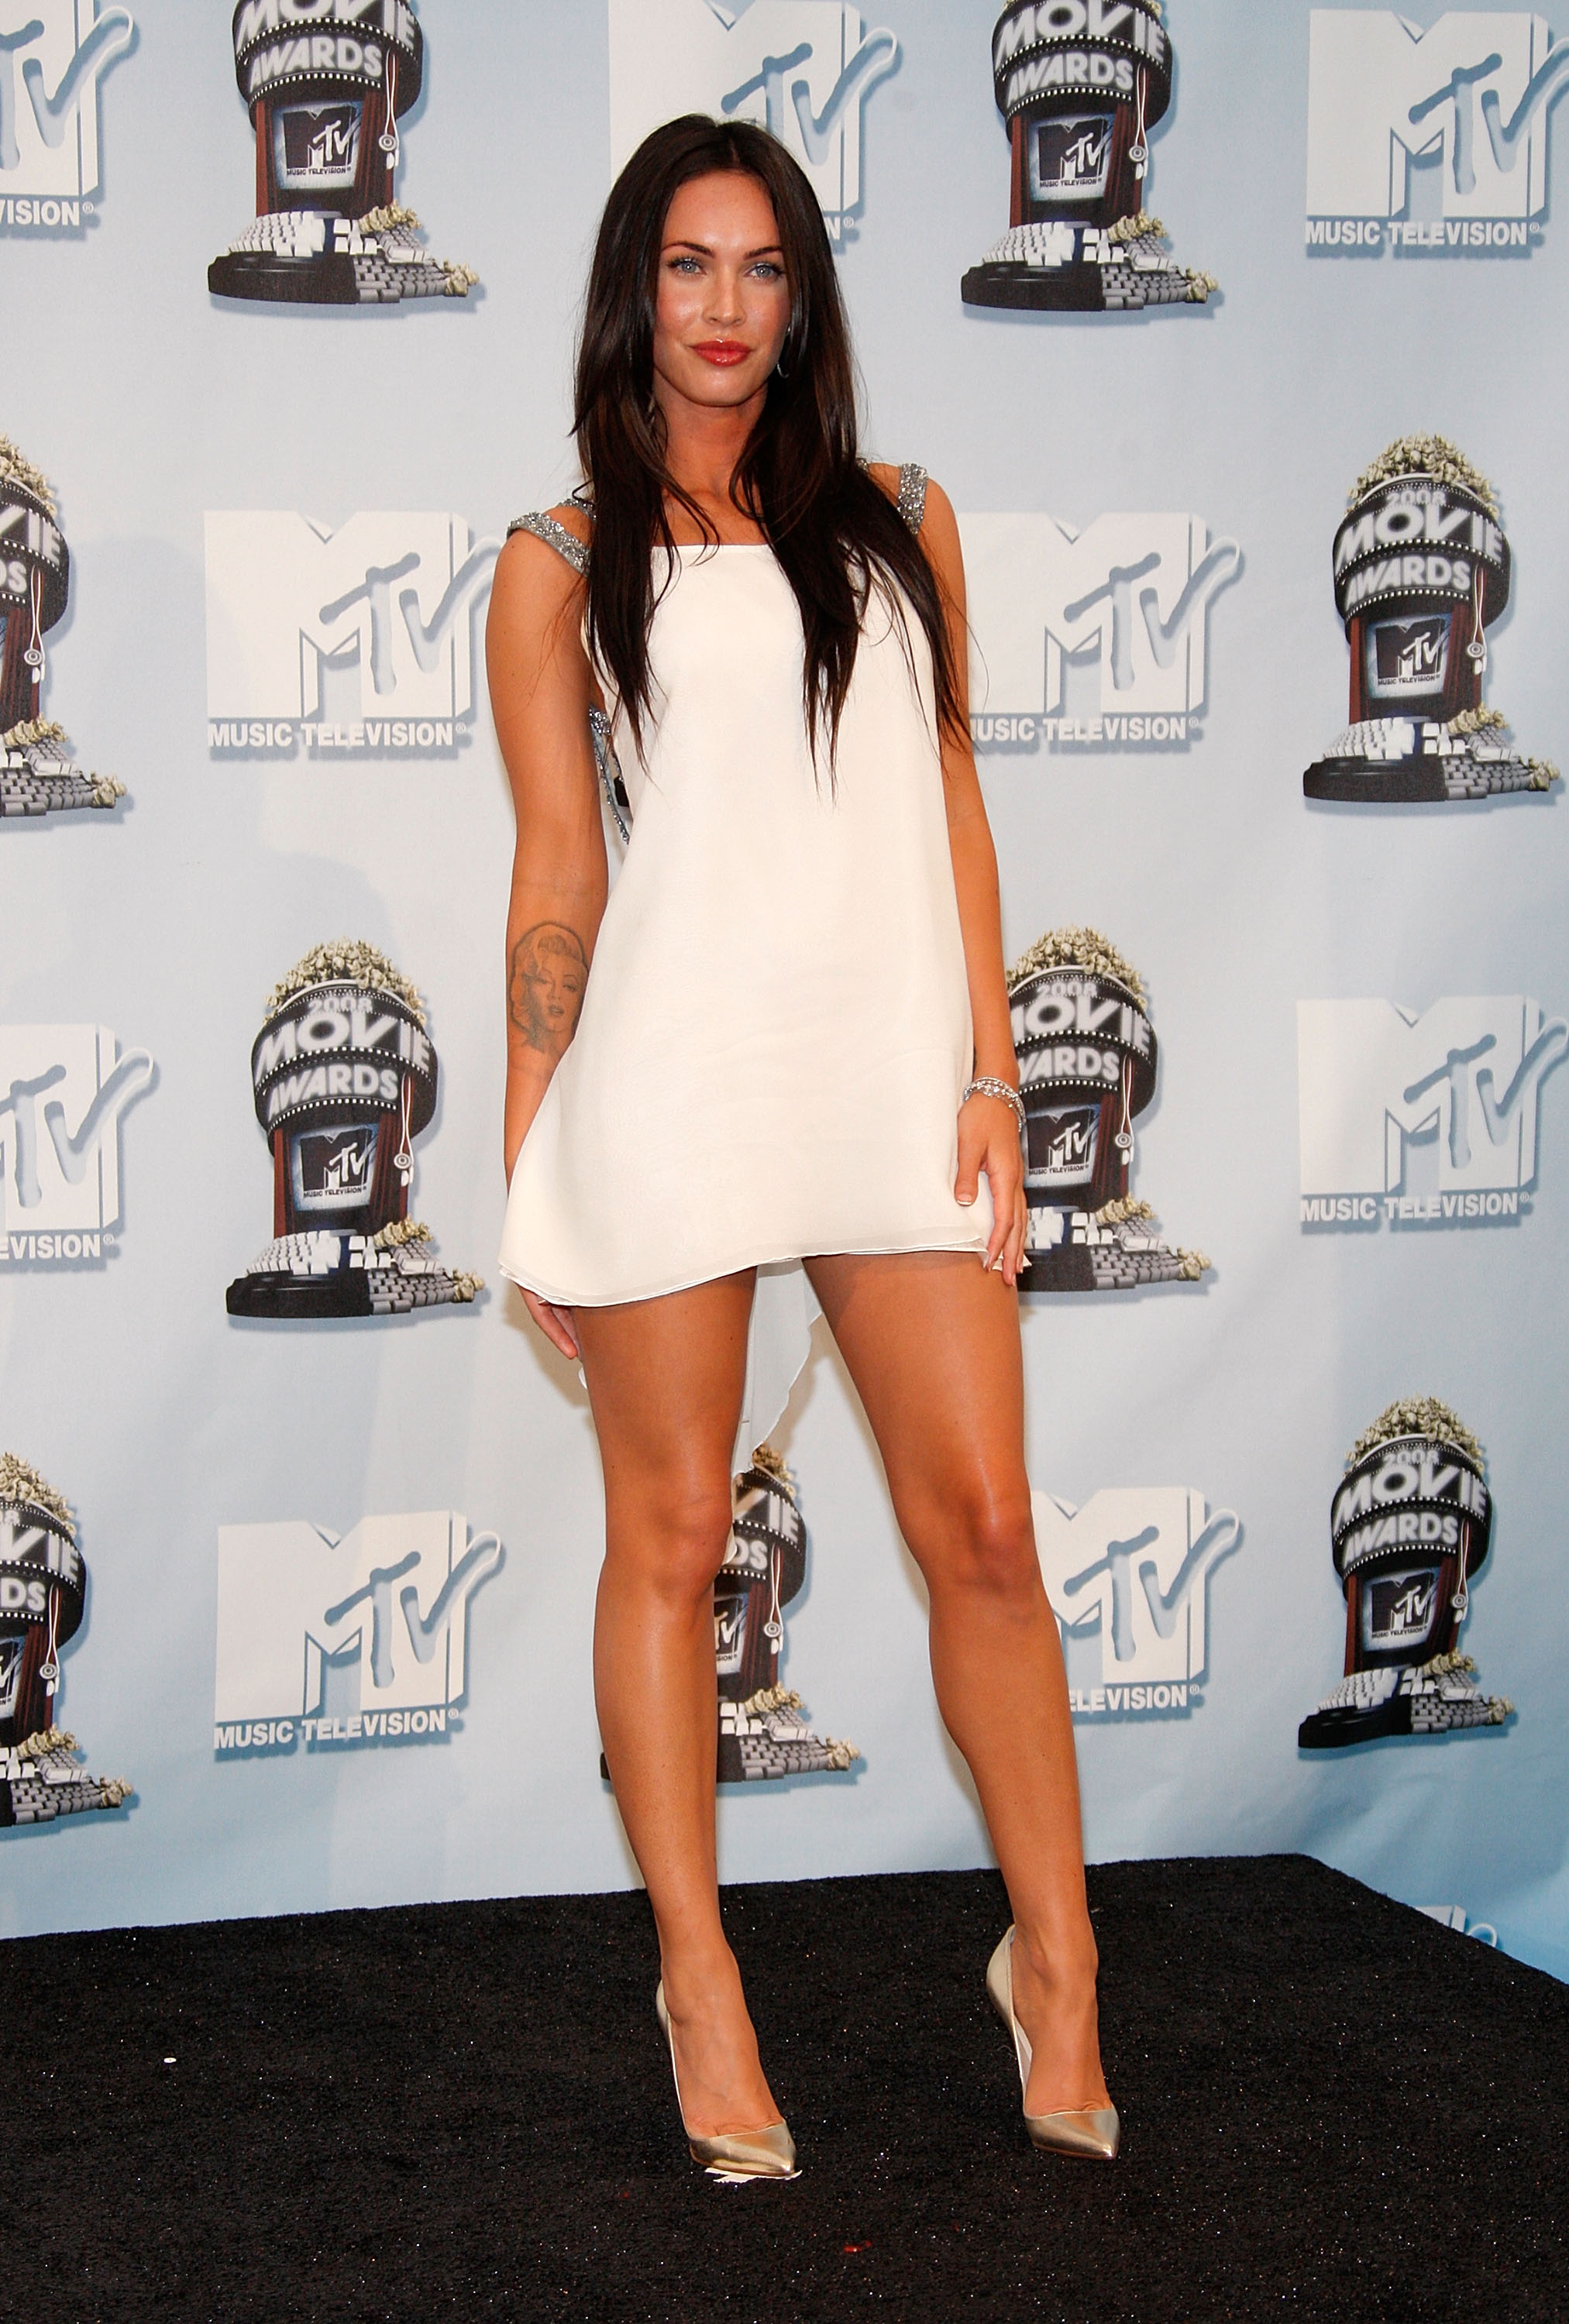 Megan Fox Legs on 423 html